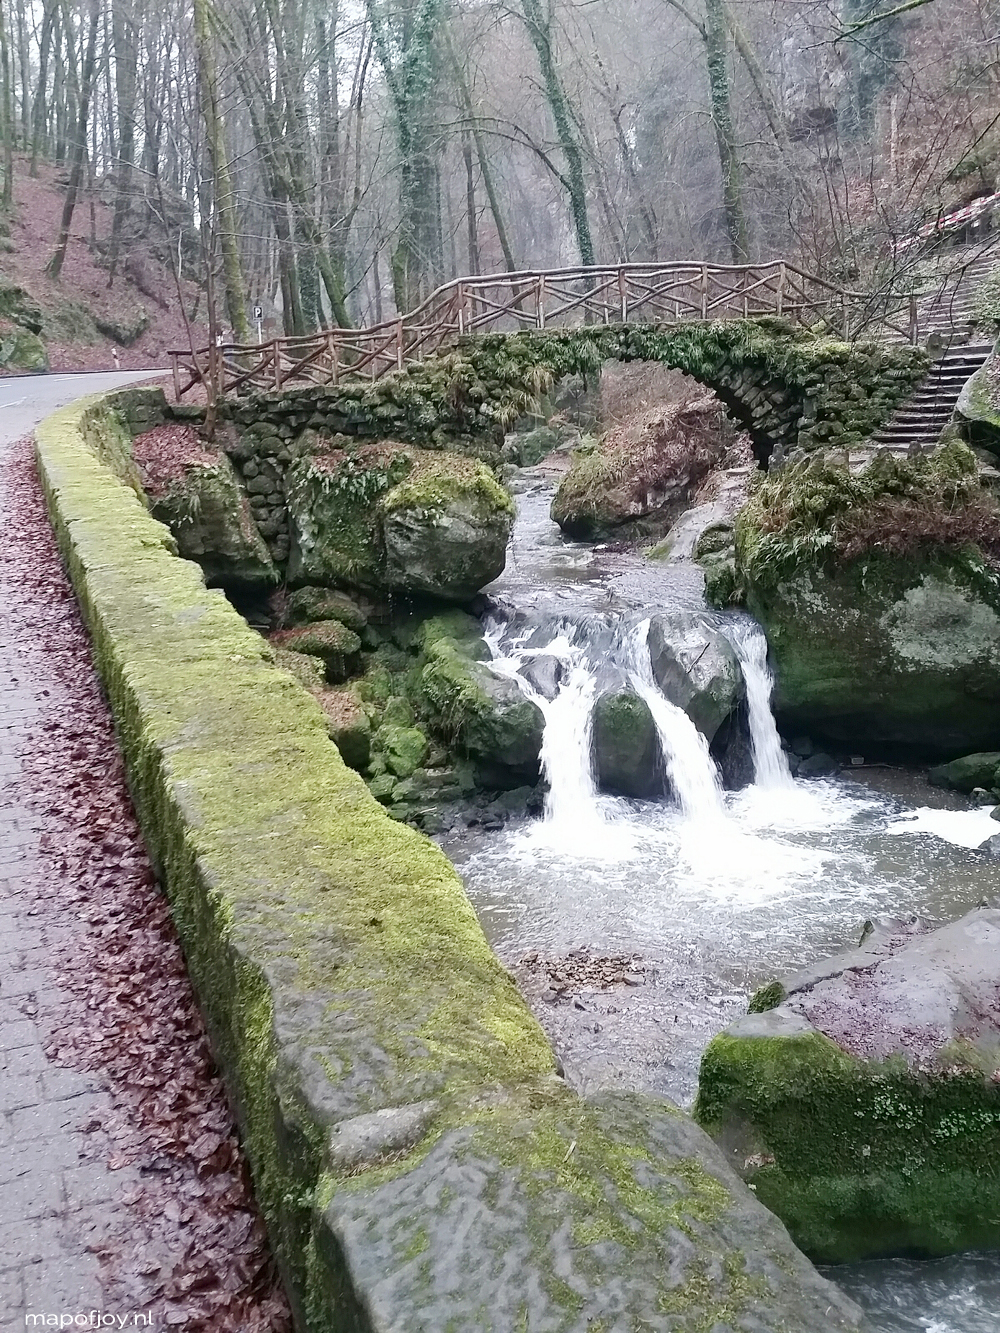 Mullerthal, Luxemburg, travel report - Map of Joy